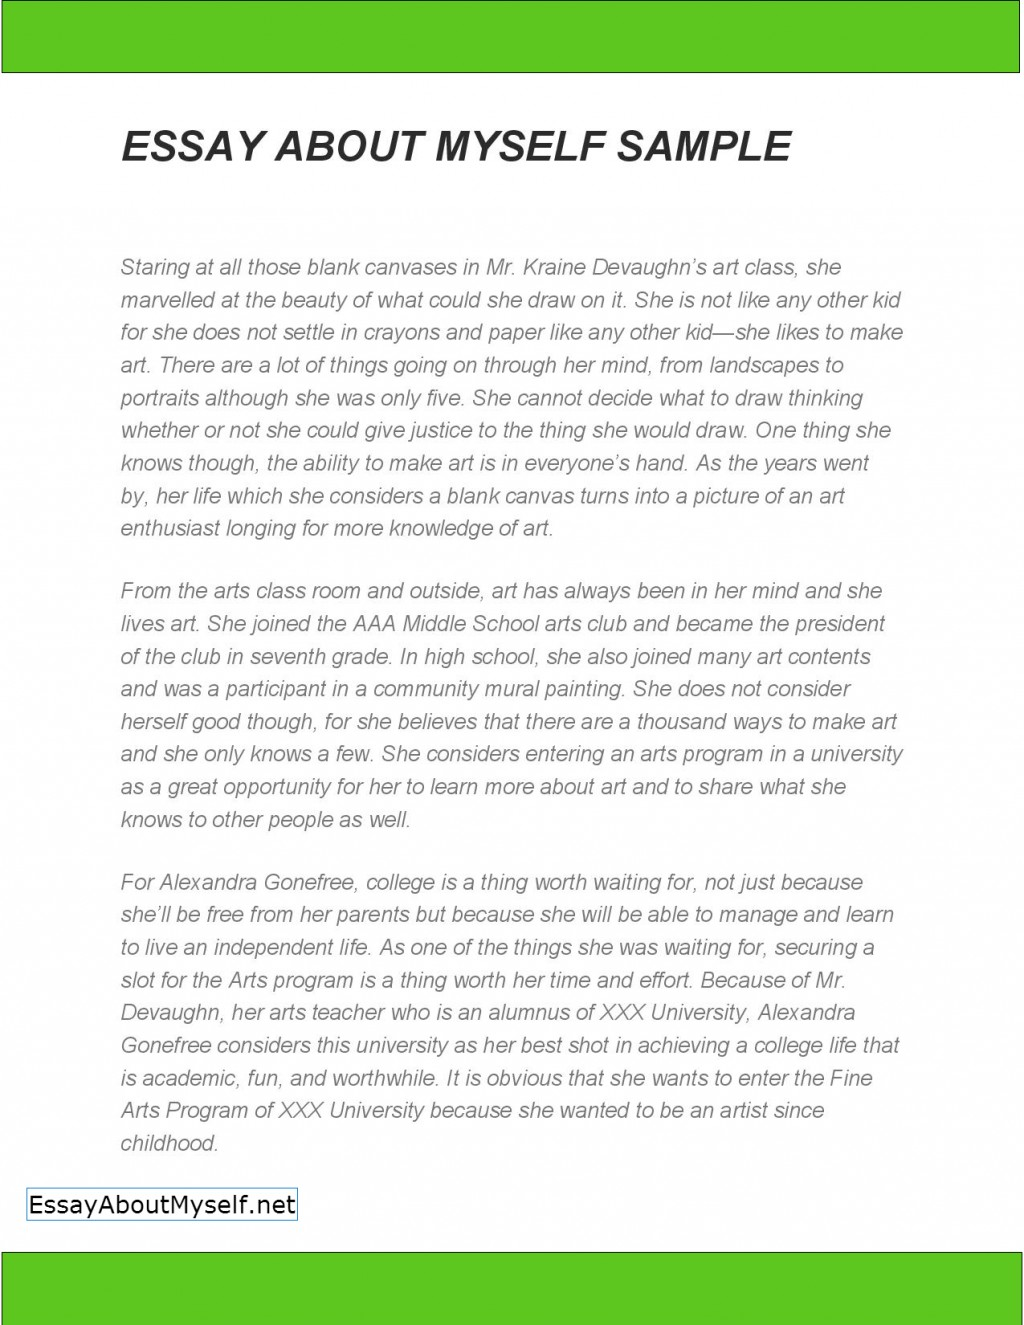 005 Essay About Myself Sample How To Write Yourself Singular A Narrative Short Paper Without Using I Large